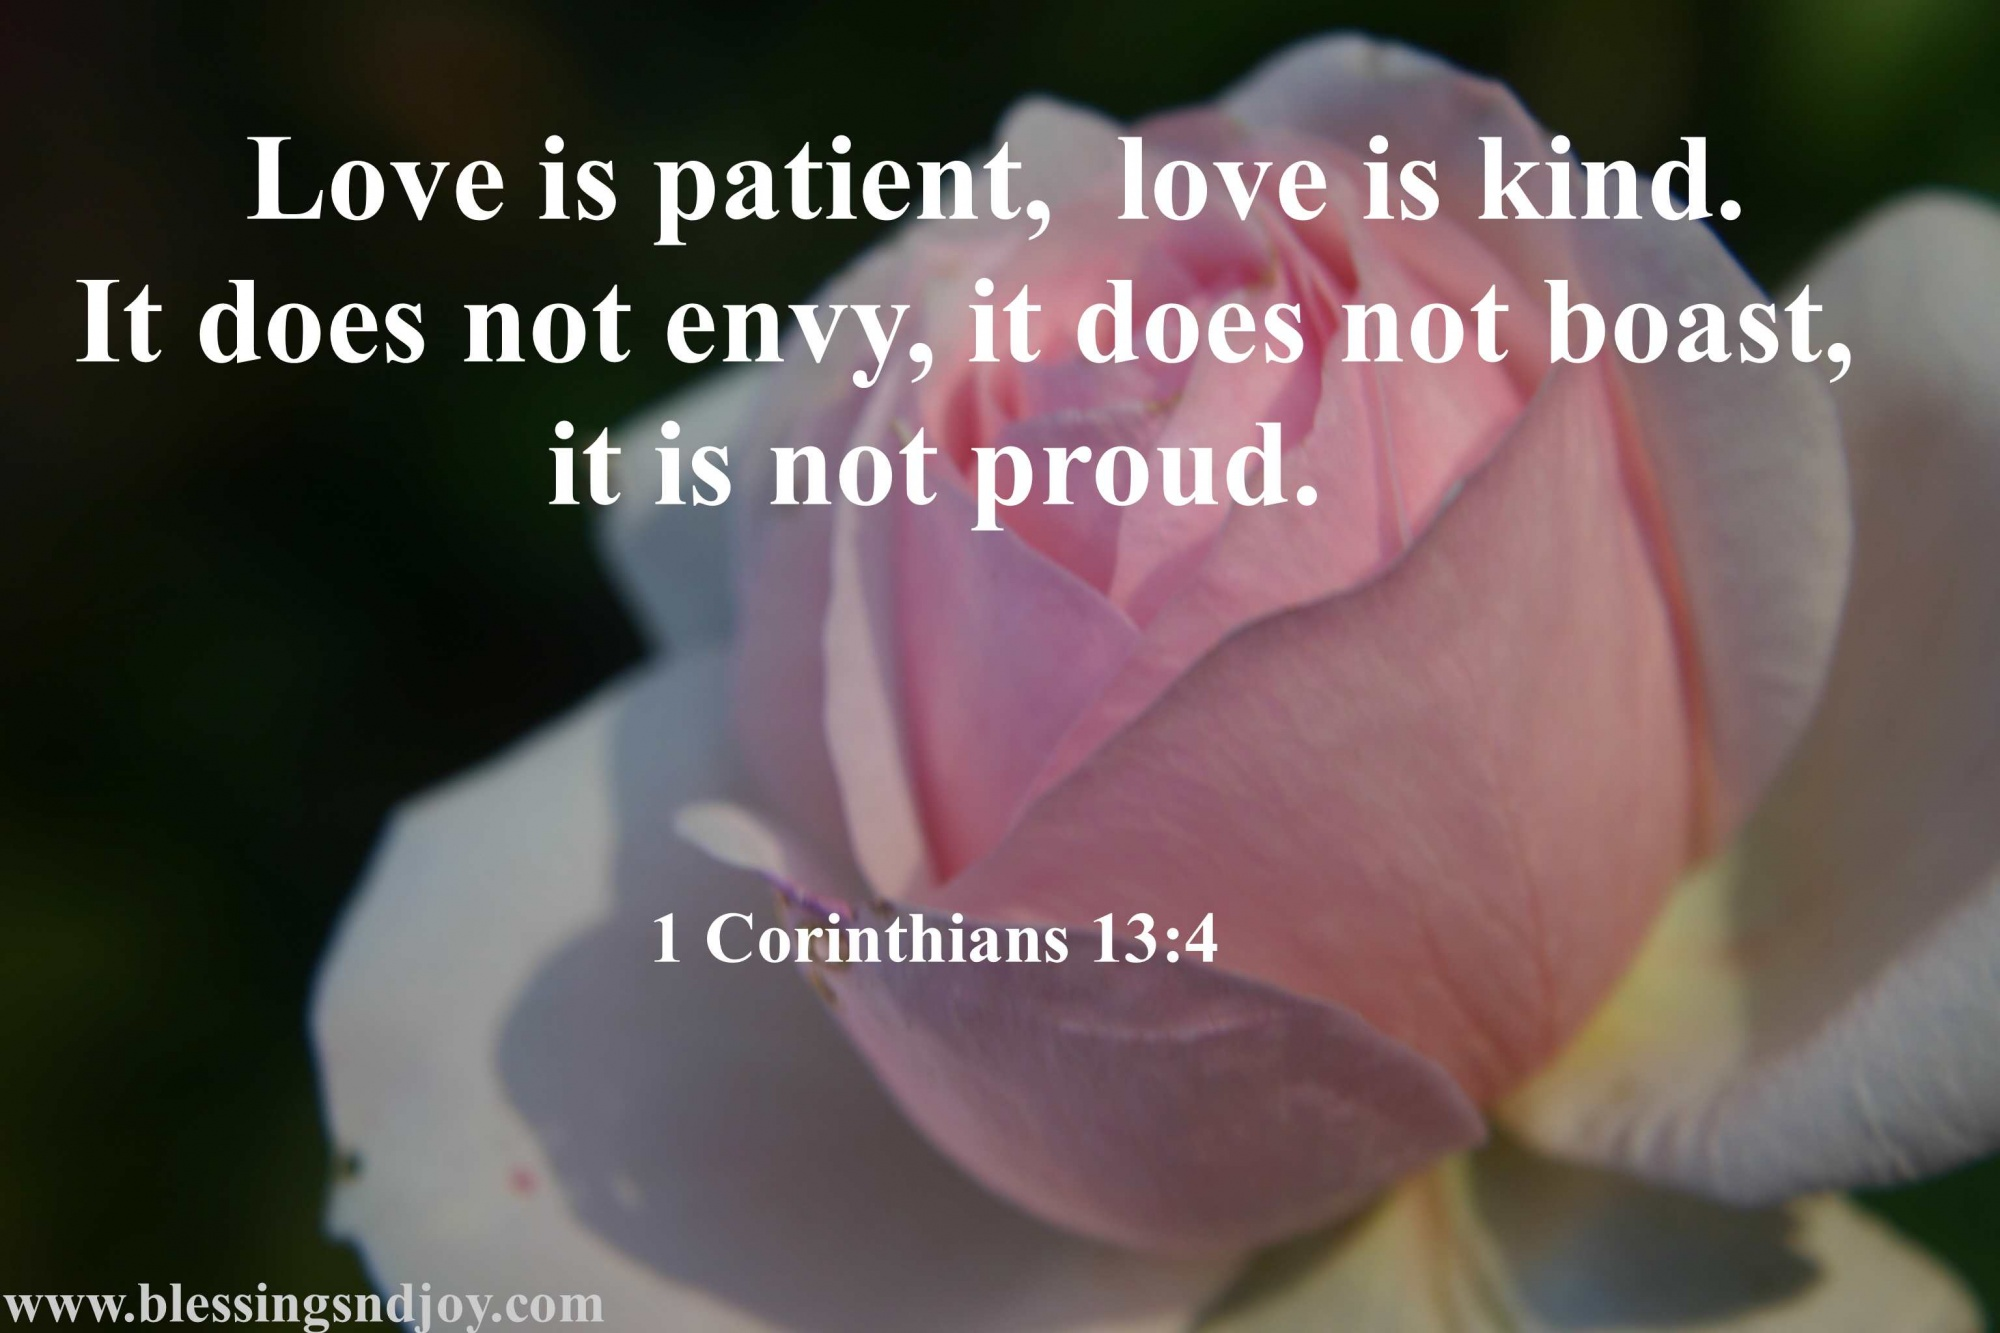 1_Corinthians_13_Love_is_patient-33